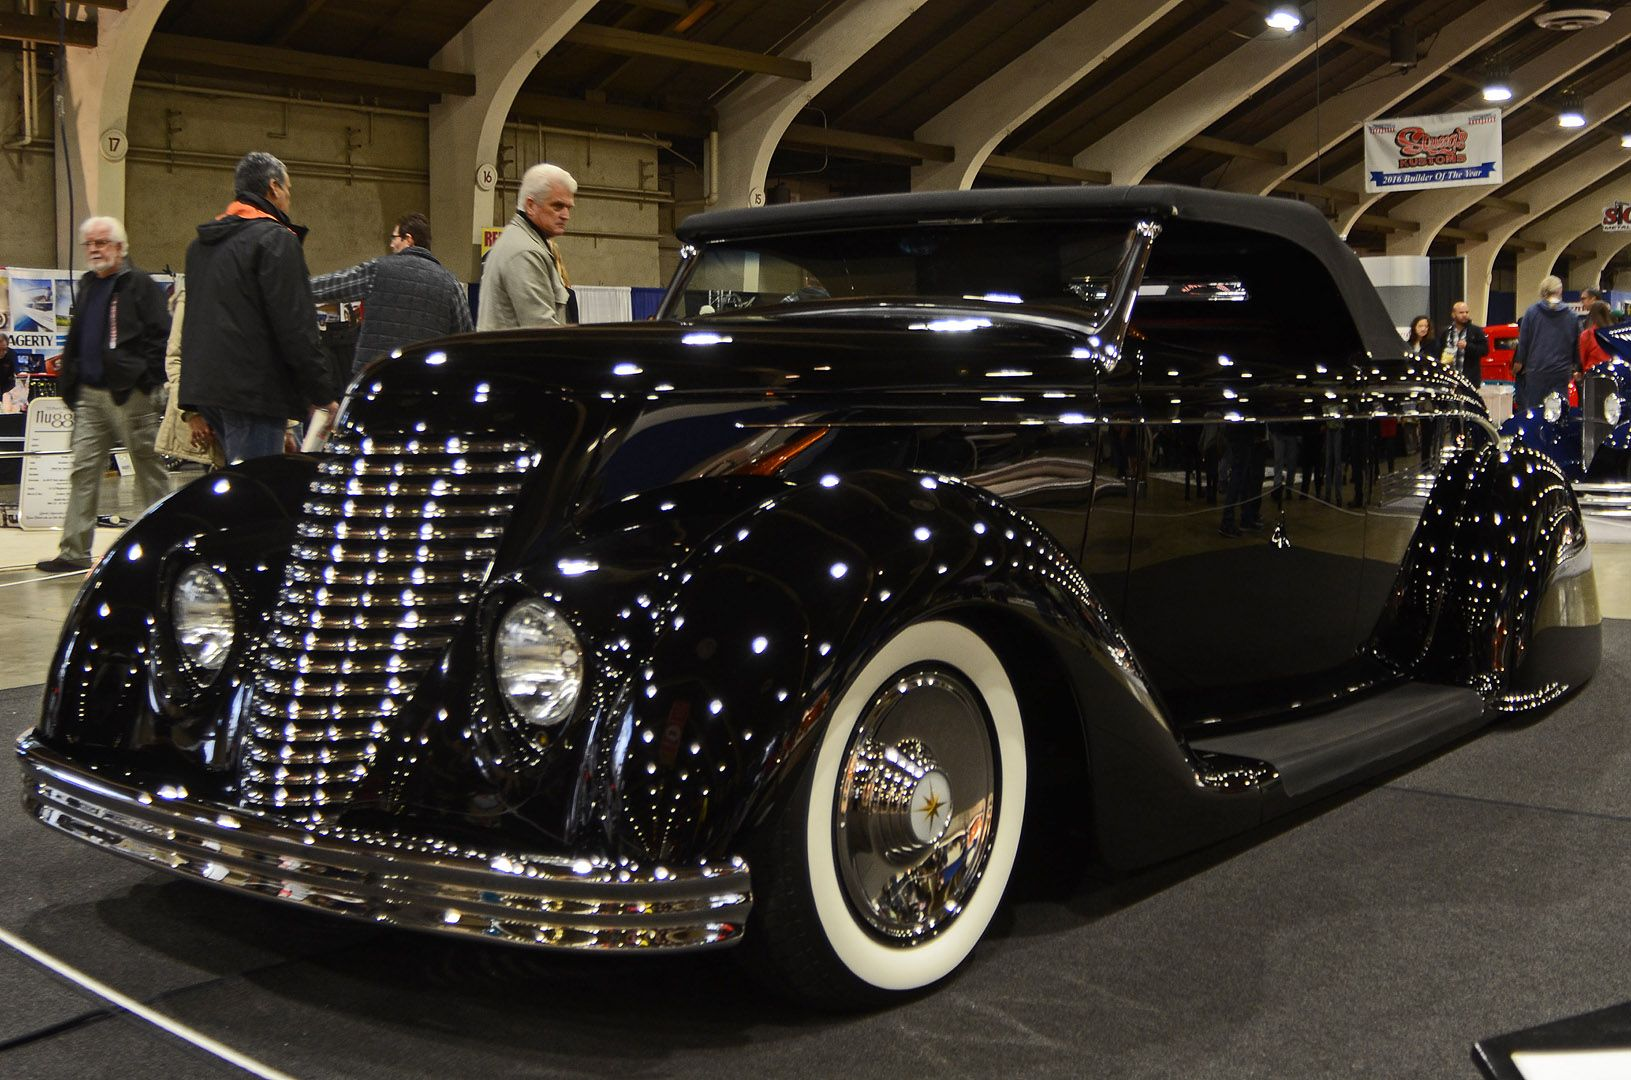 It's the Granddaddy of 'Em All (And Hot Rodding Wins!) | The Jalopy Journal The Jalopy Journal